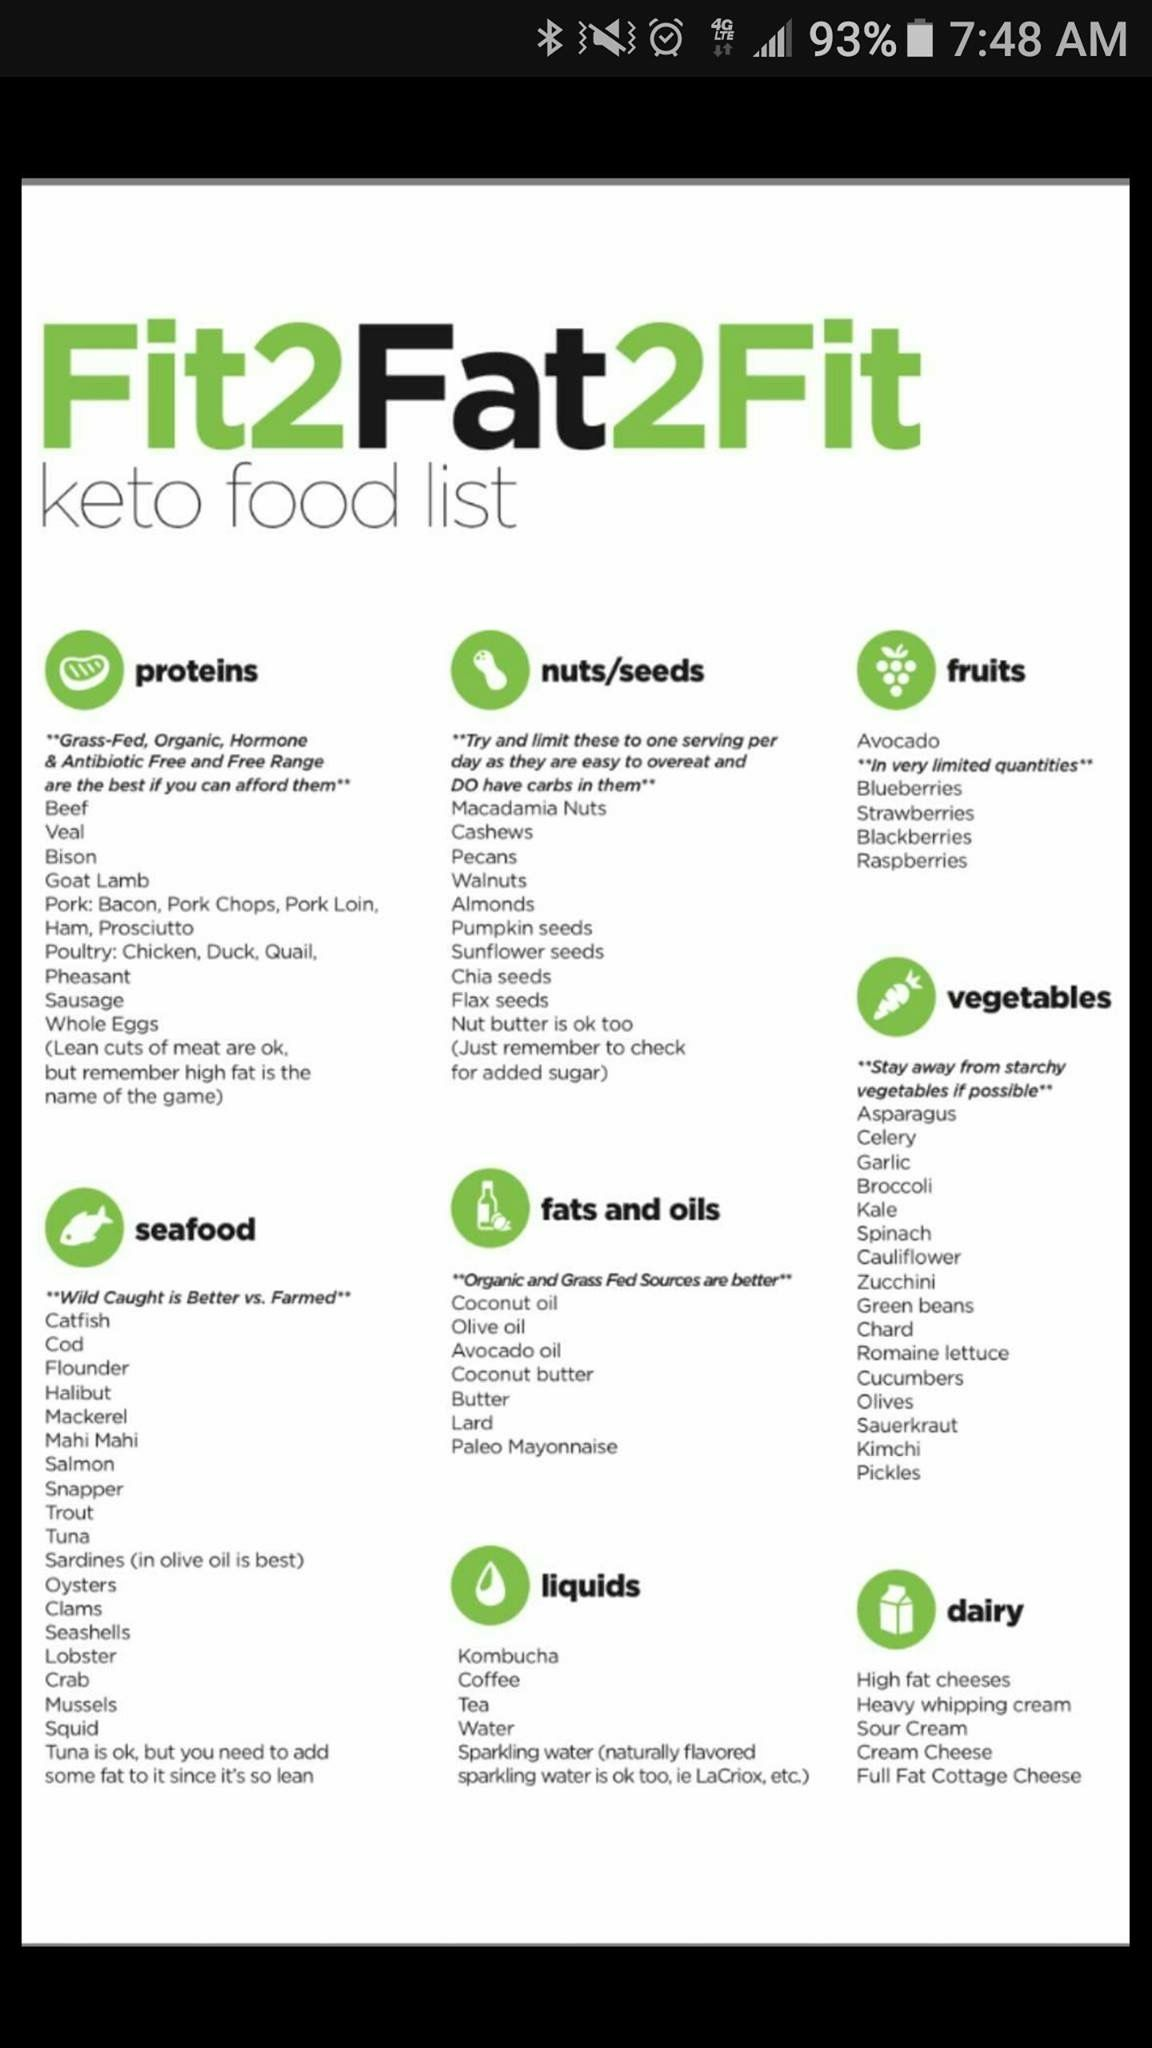 Pin by Leah White on ketogenic diet | Keto, Keto food list, Ketogenic Diet